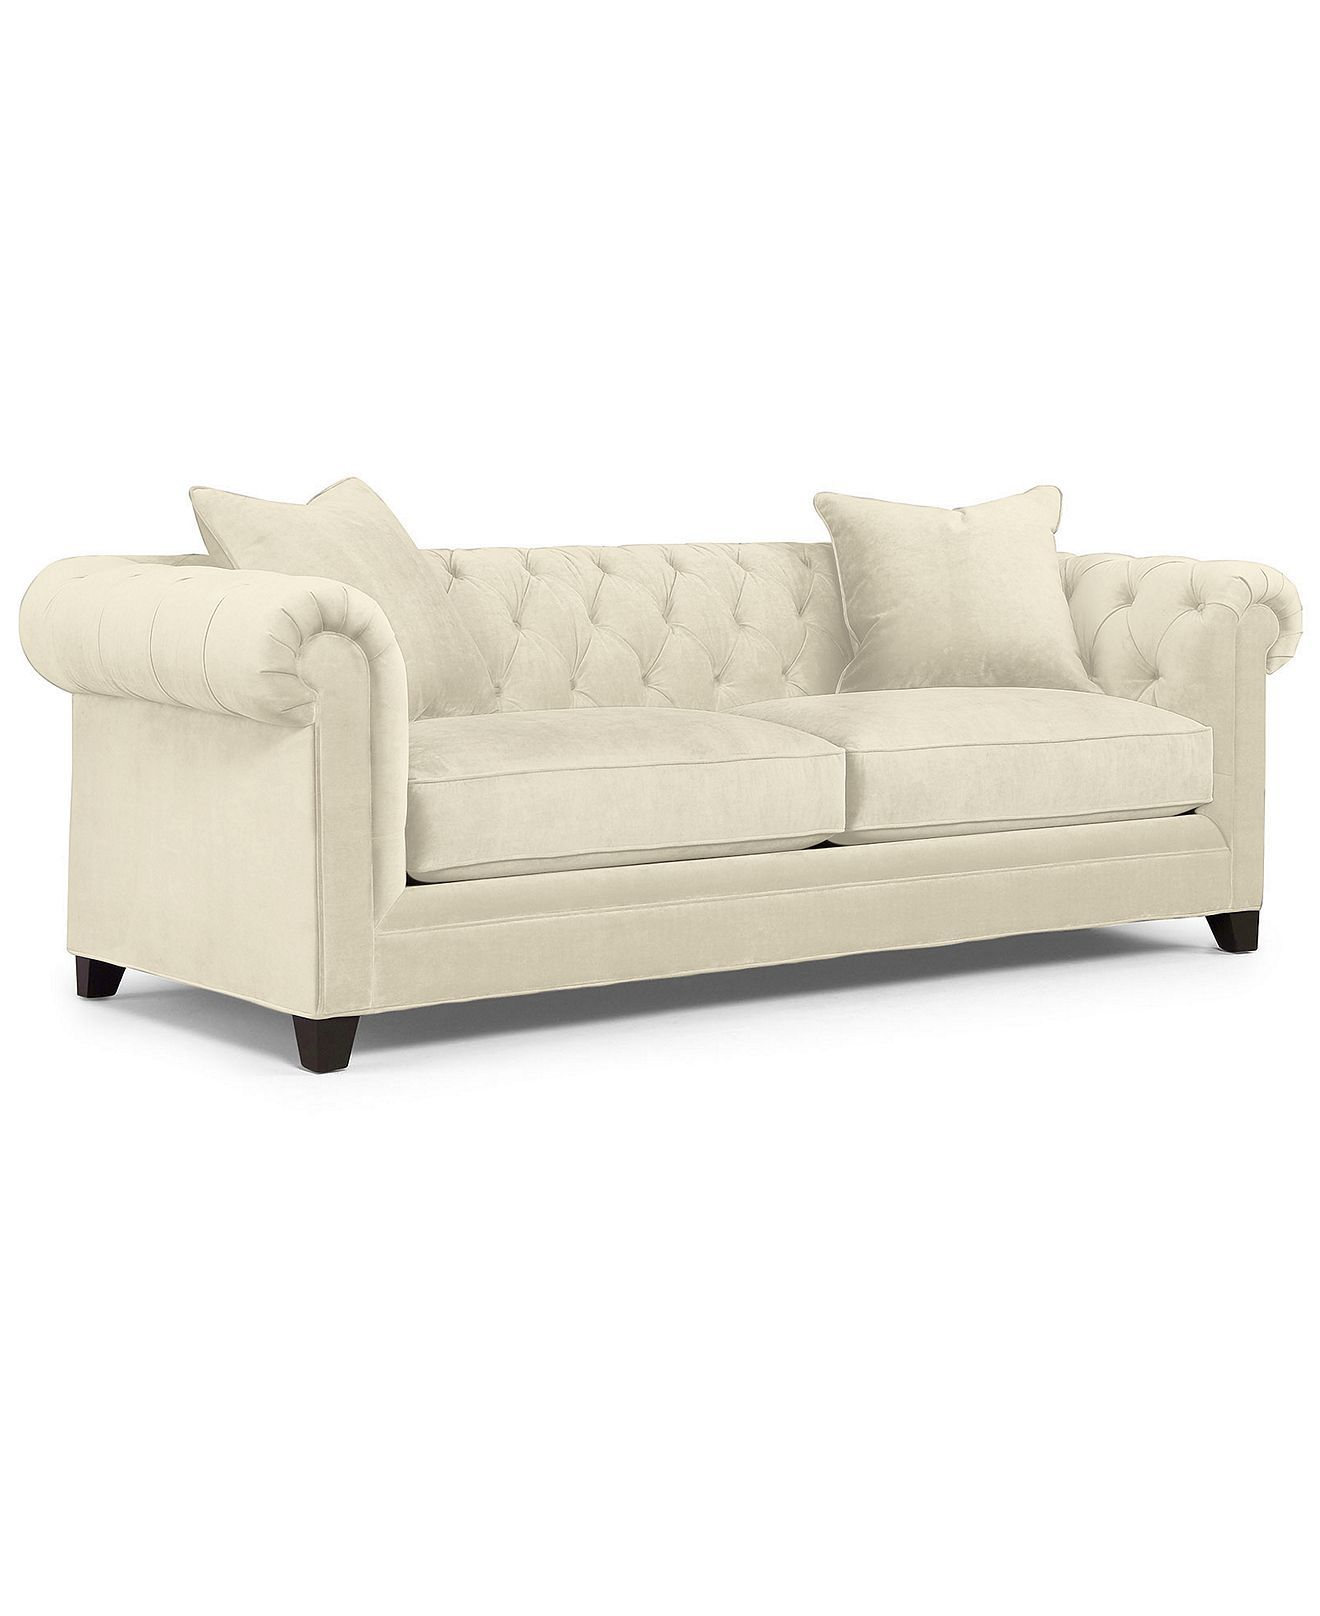 Martha Stewart Collection Saybridge Fabric Sofa - Custom Colors